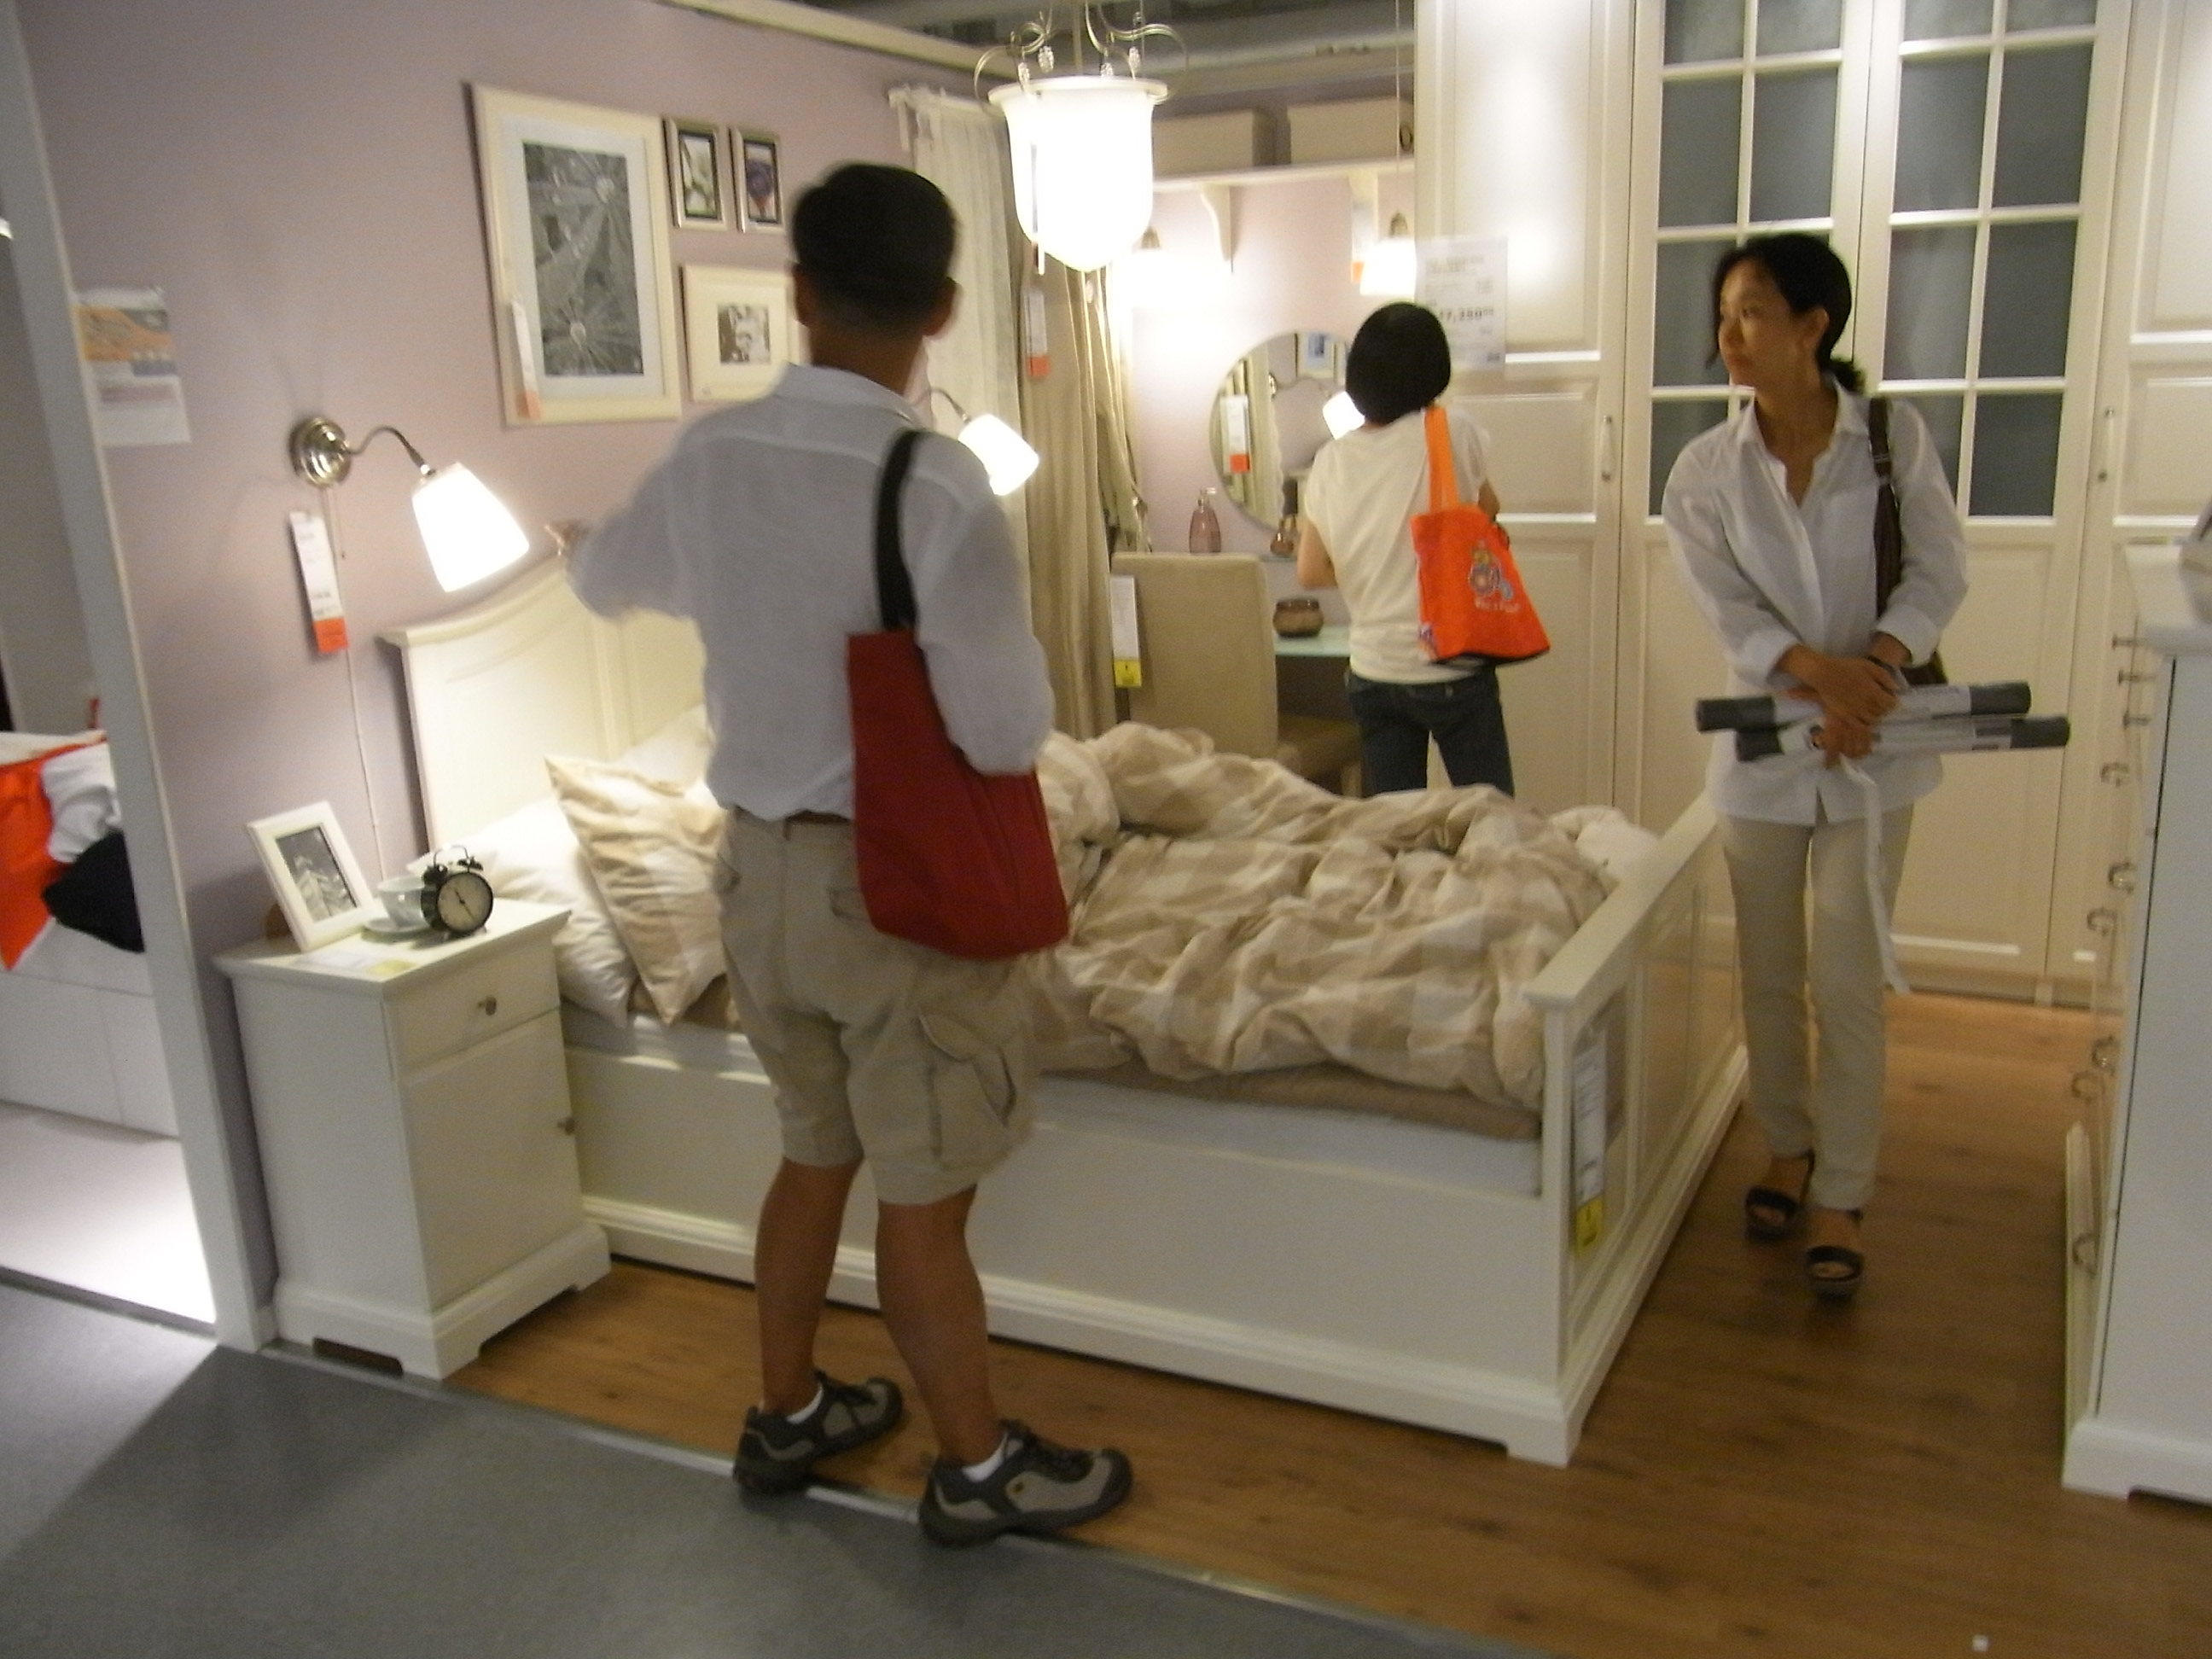 File Hk Causeway Bay Ikea Furniture Shop Interior Small Size Unit Design Visitors July 2012 Jpg